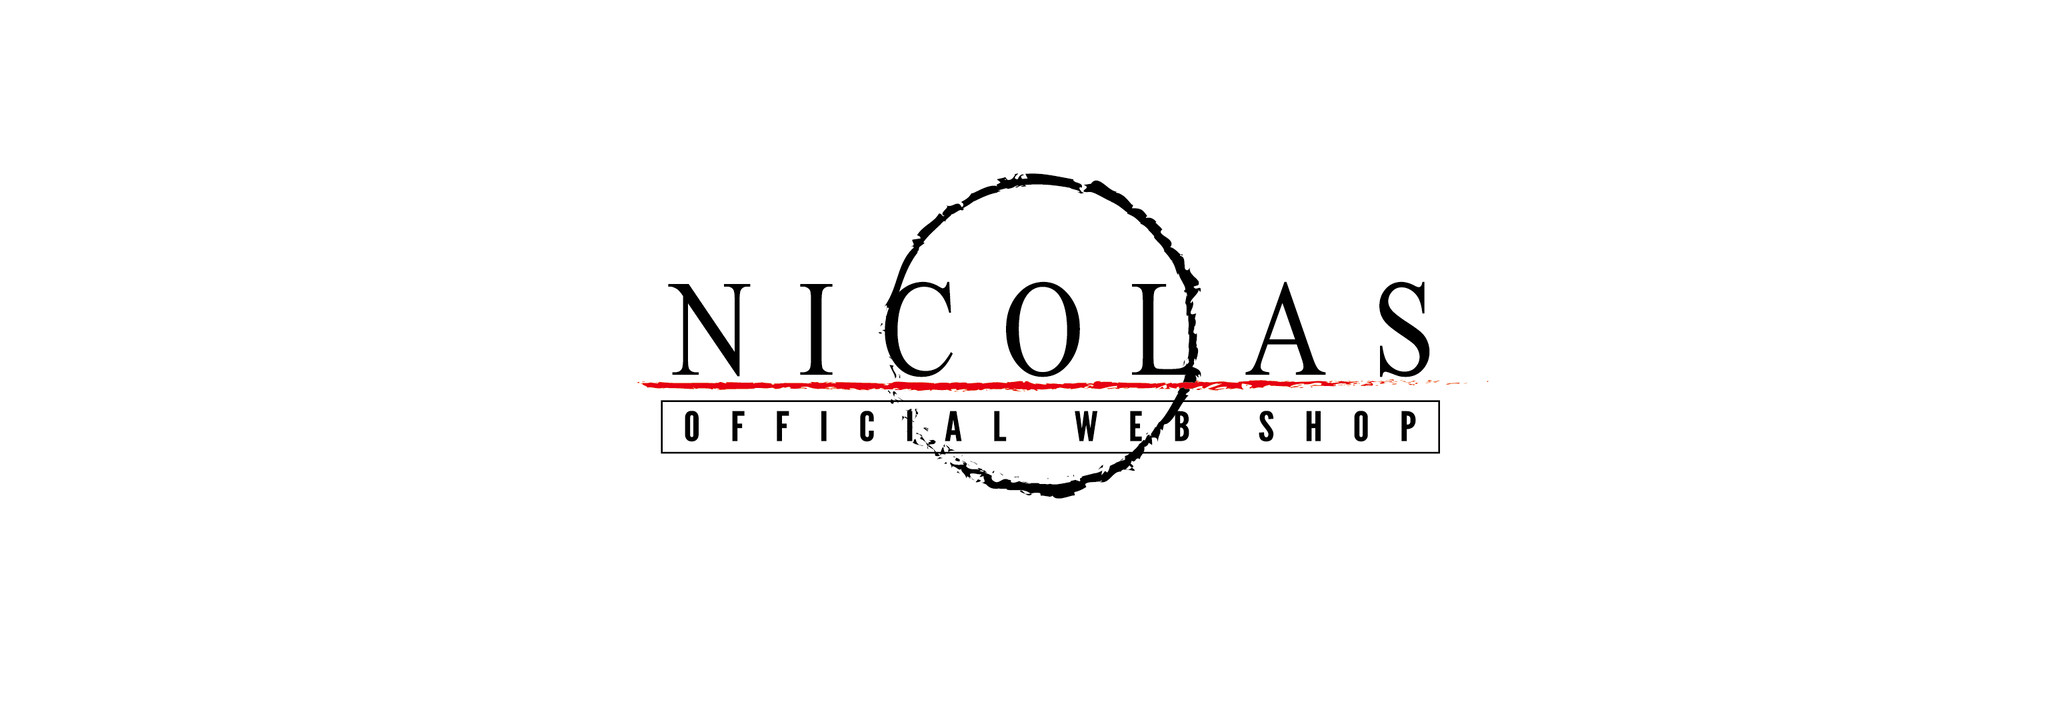 NICOLAS OFFICIAL WEB SHOP